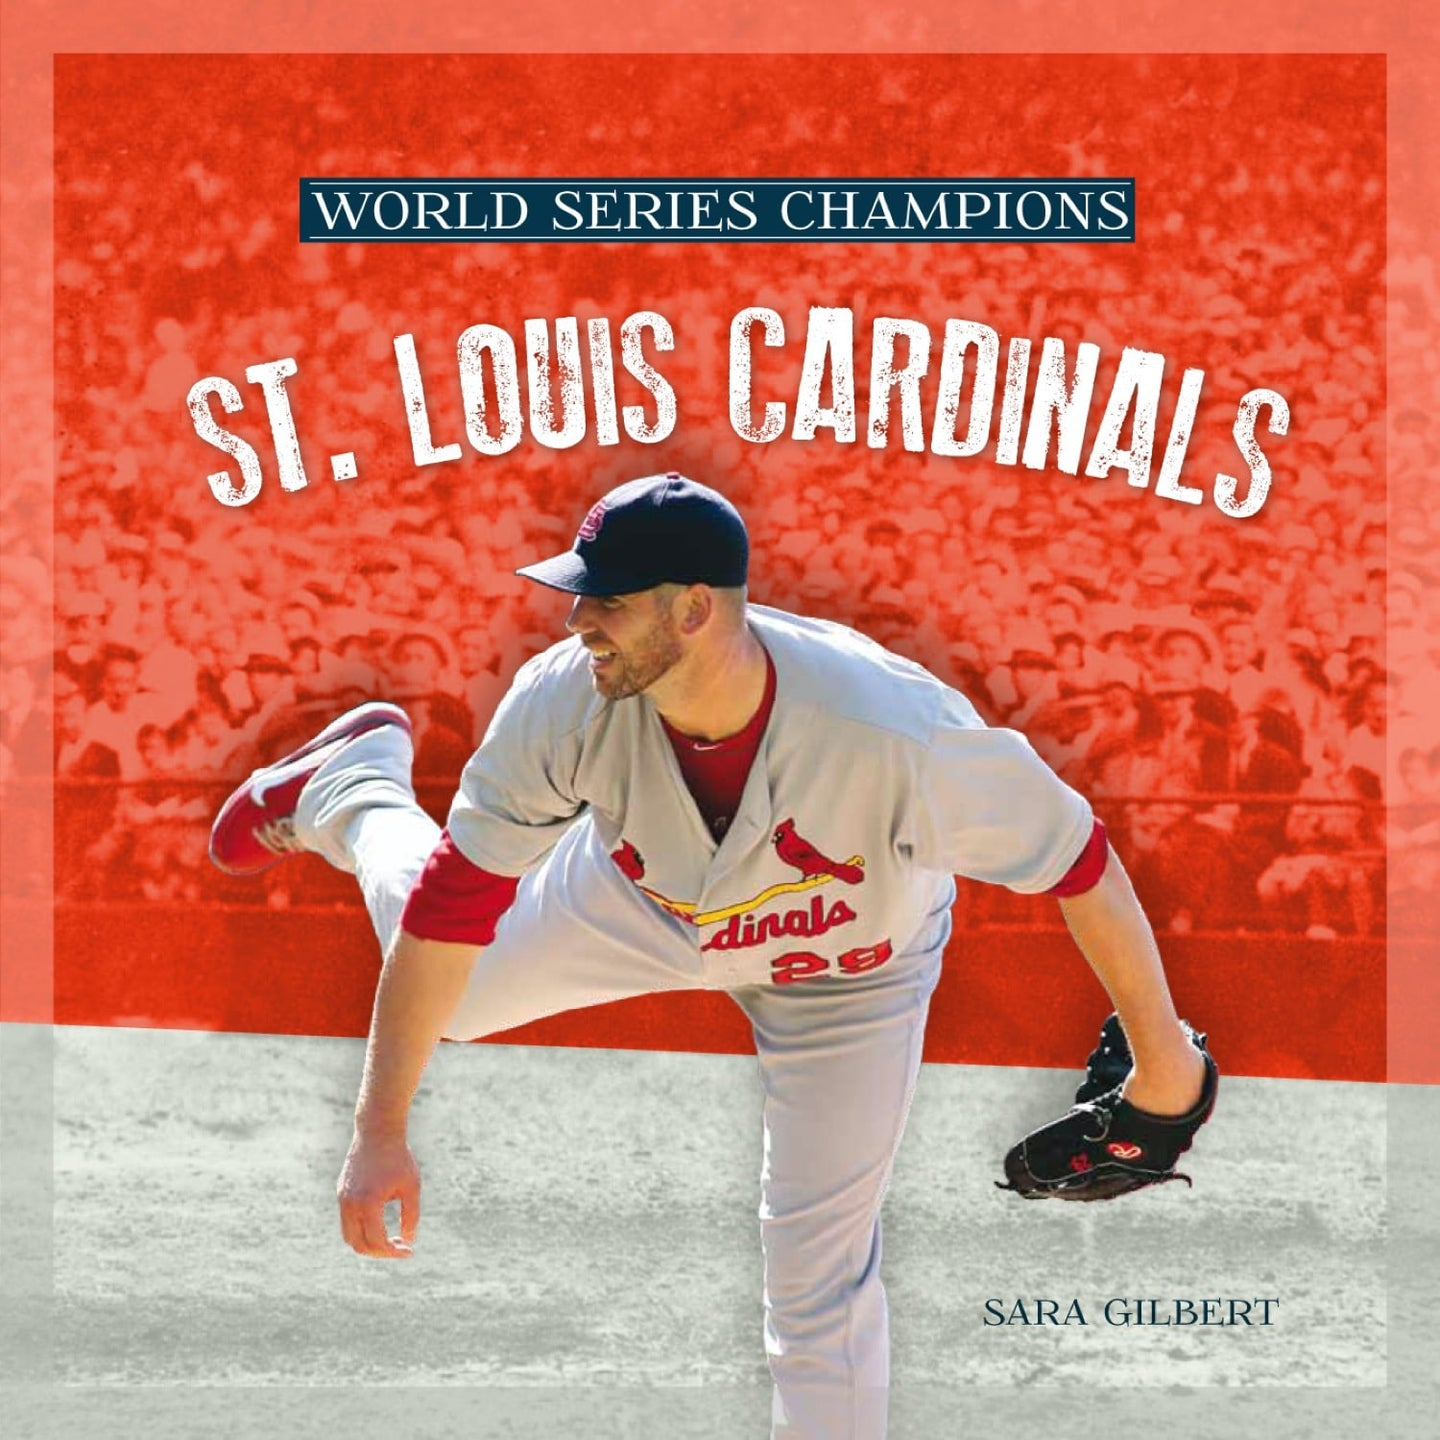 World Series Champions: St. Louis Cardinals